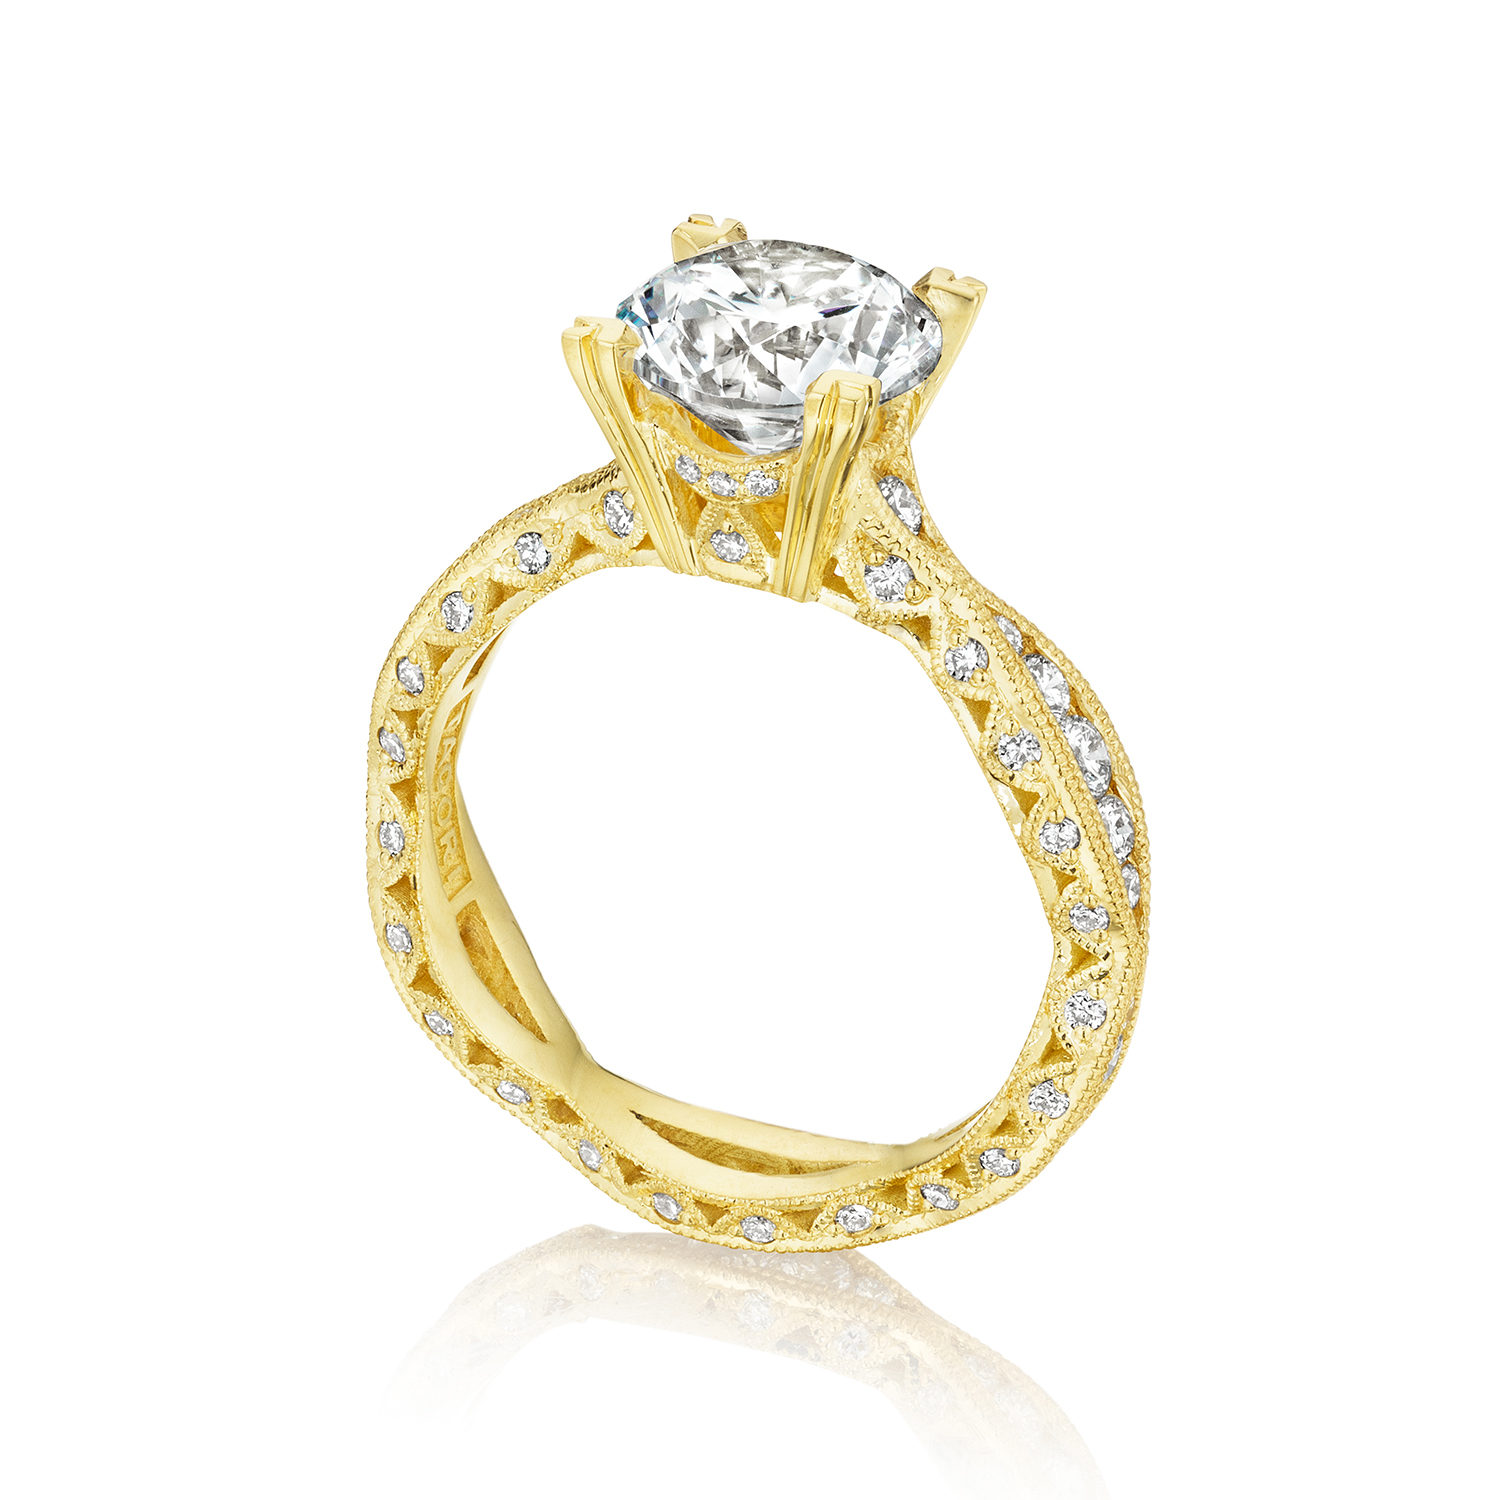 Tacori engagement rings gold diamond twist setting for Wedding rings tacori